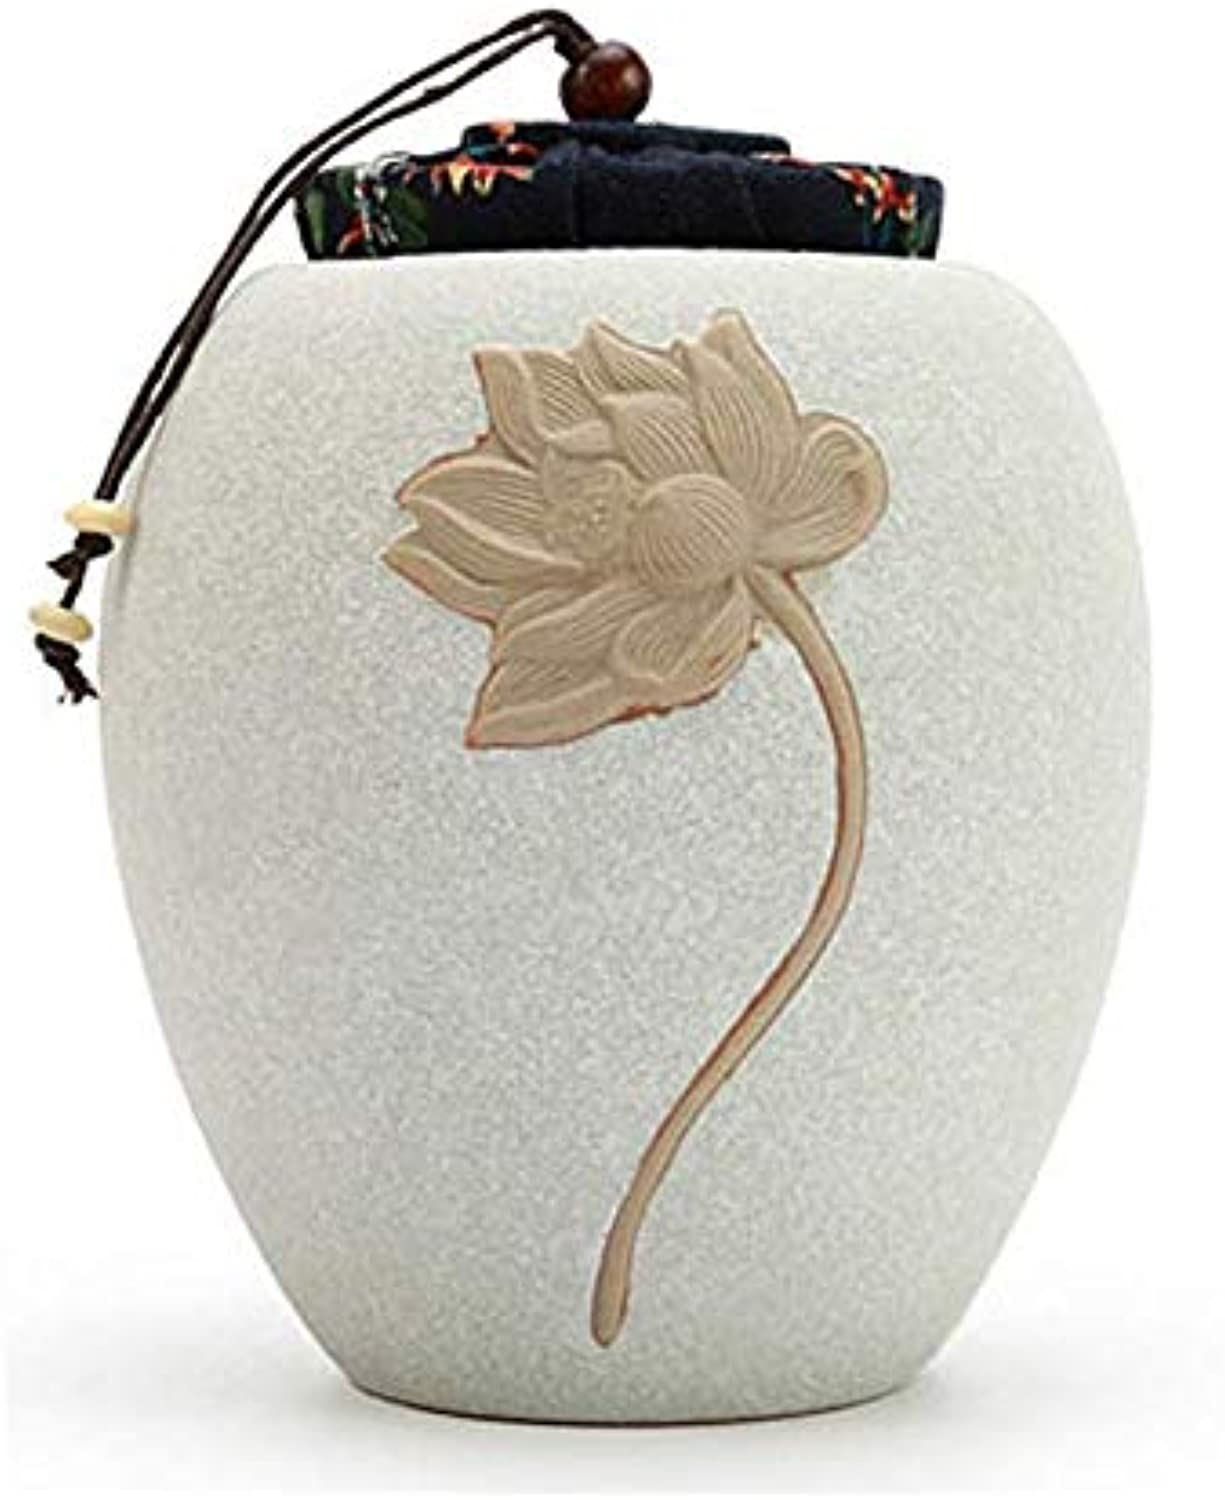 Funeral Urn for Pet Ashes Cremation Funeral Memorial Container Vase Jar,Display Burial Urn at Home or Office (White)